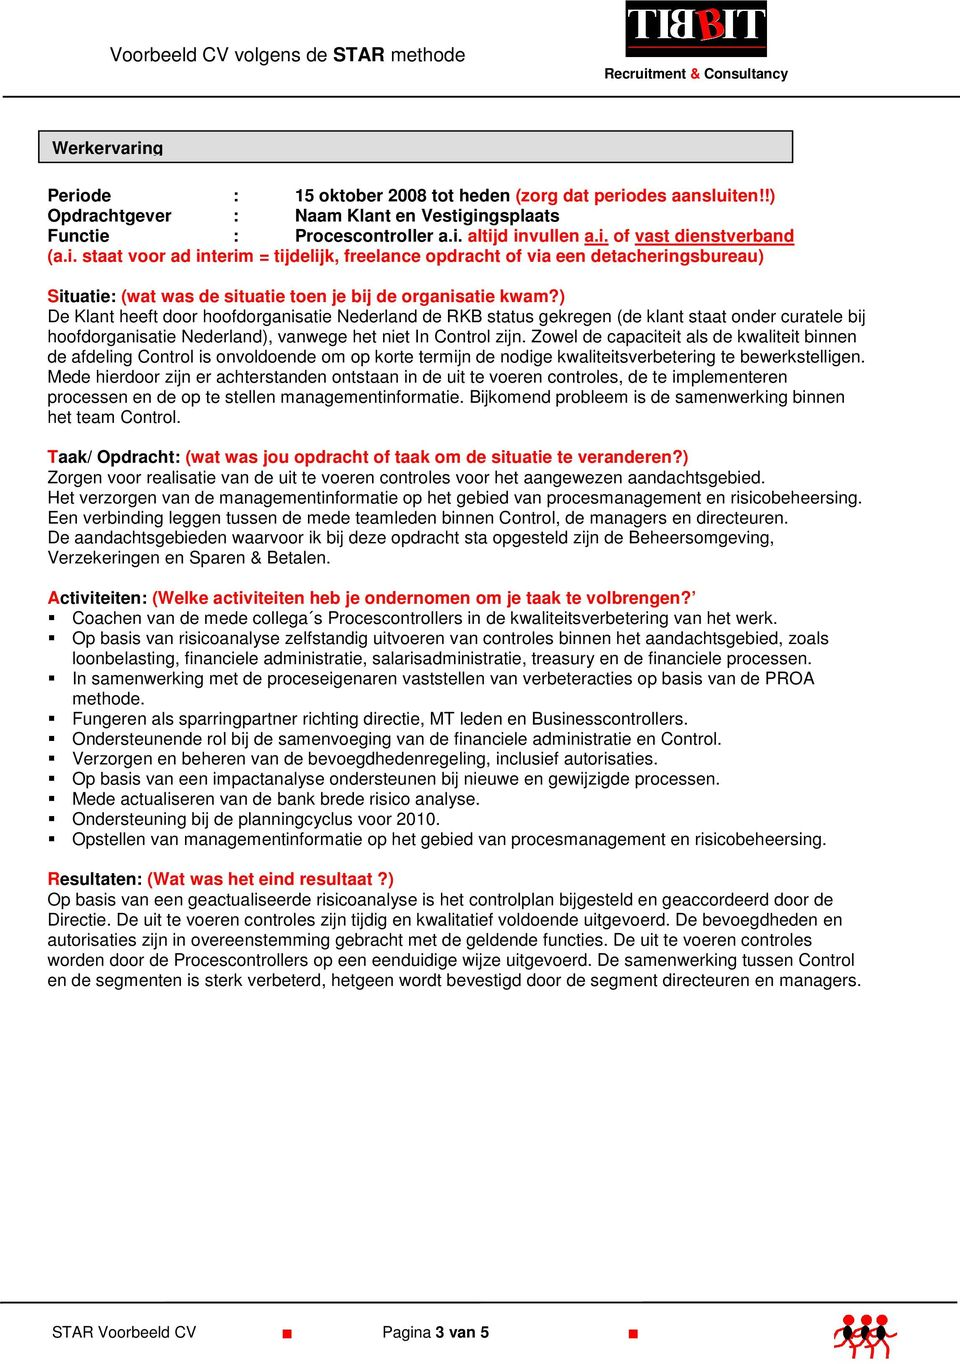 voorbeeld cv volgens de star methode recruitment  u0026 consultancy